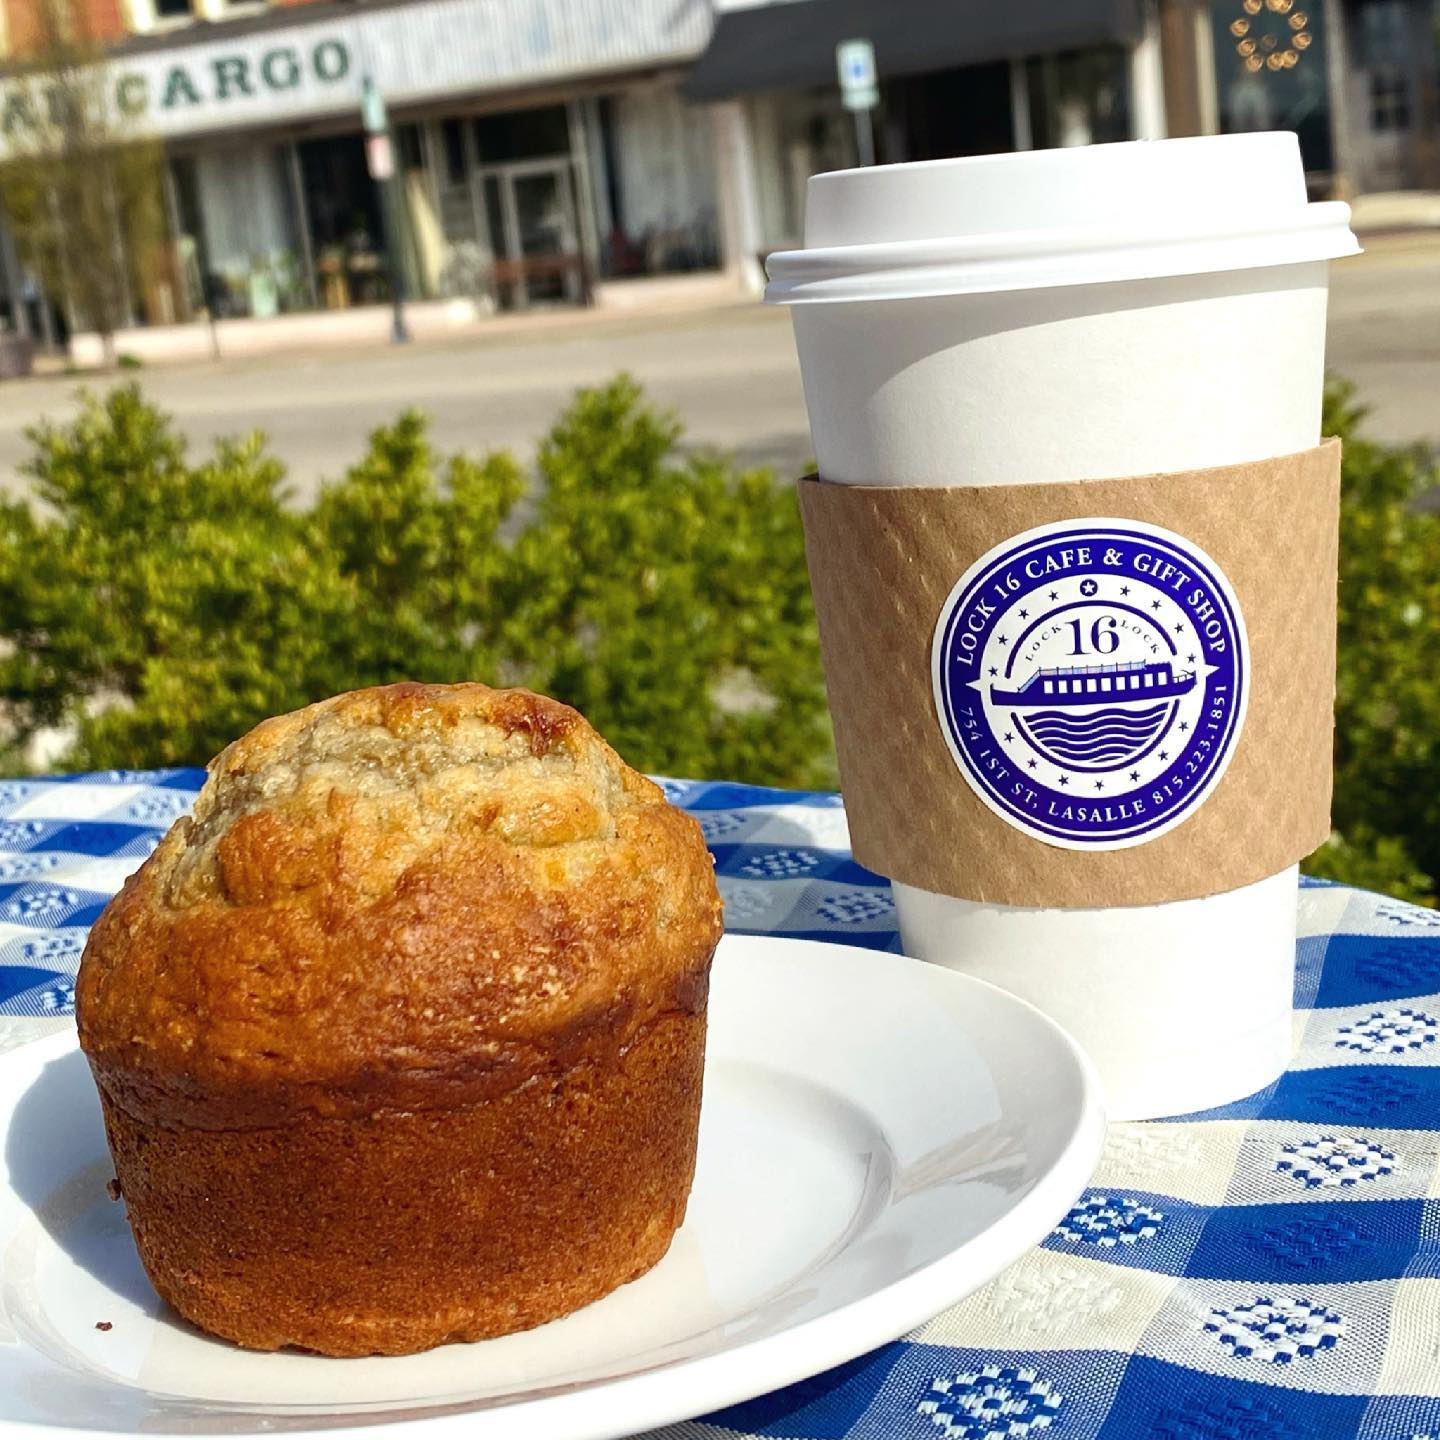 a muffin and a cup of coffee